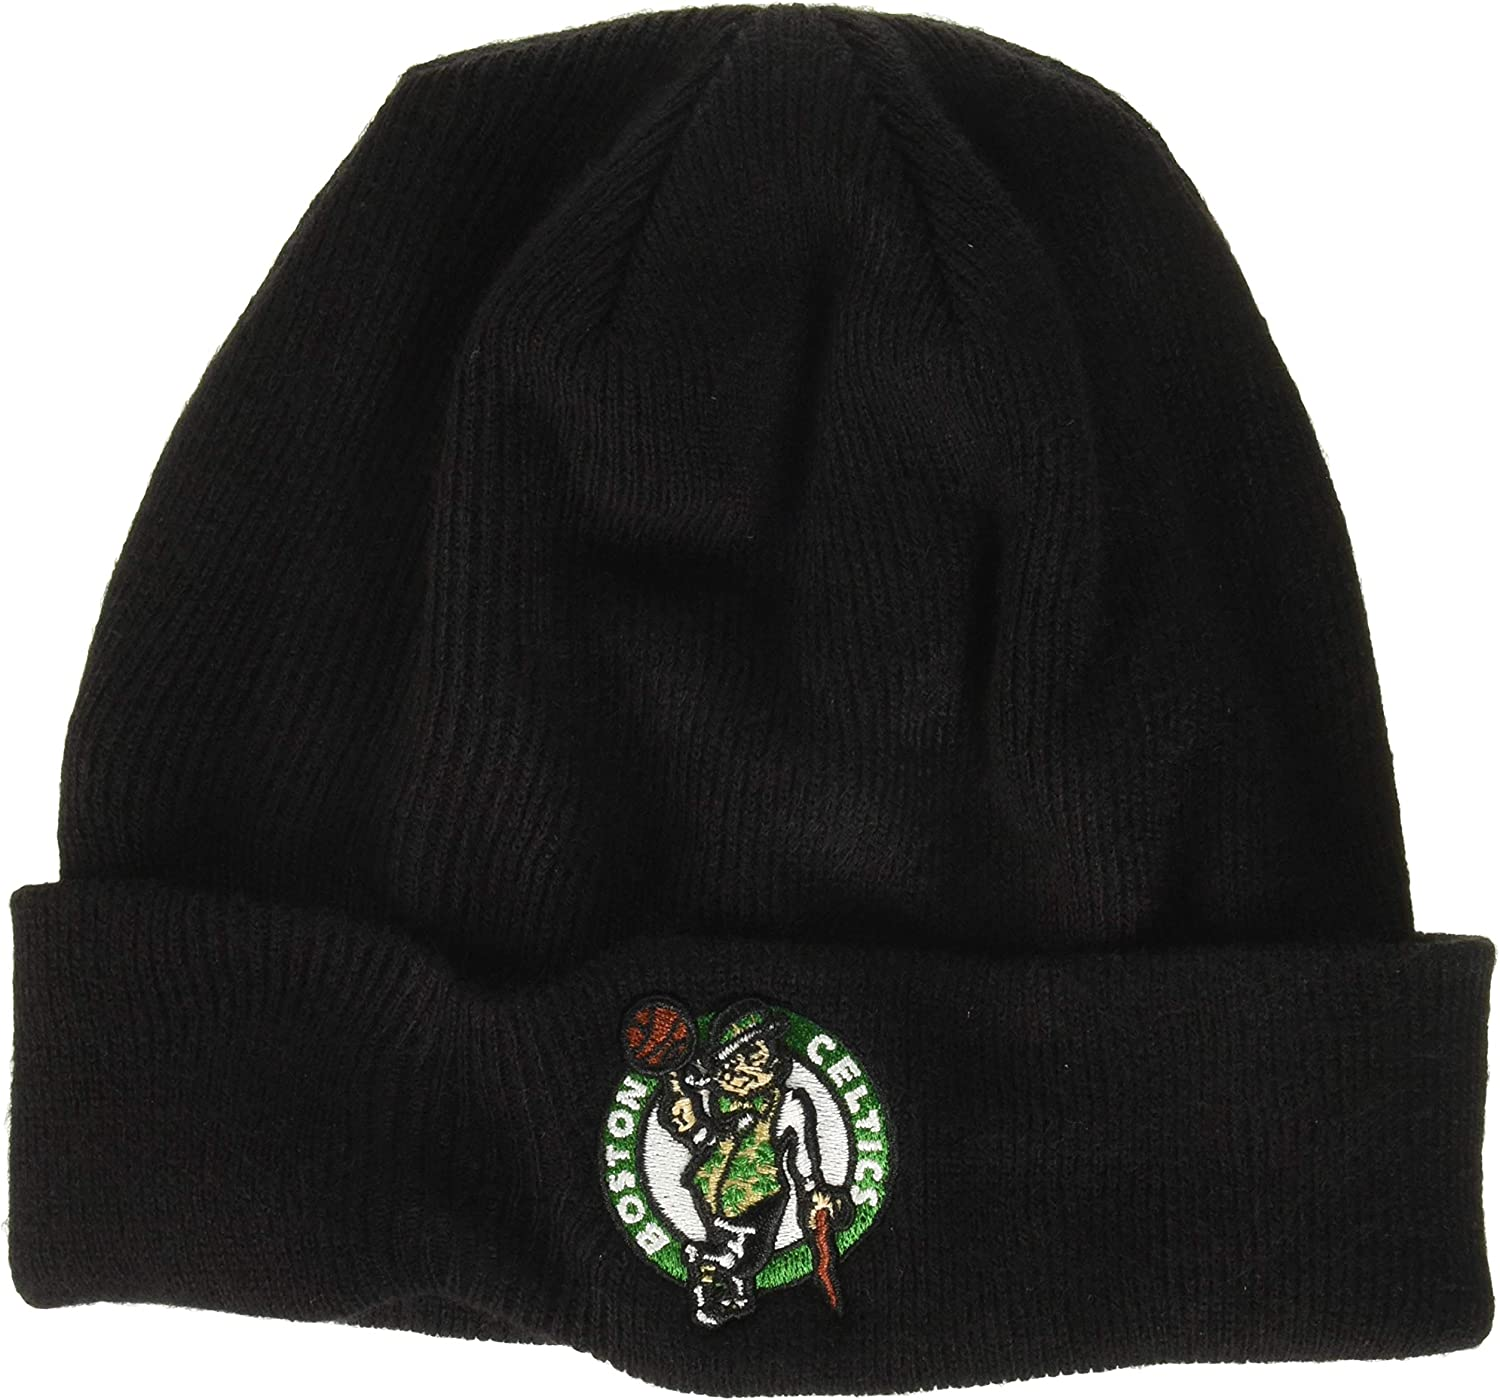 OTS NBA Youth Raised Cuff Knit Cap